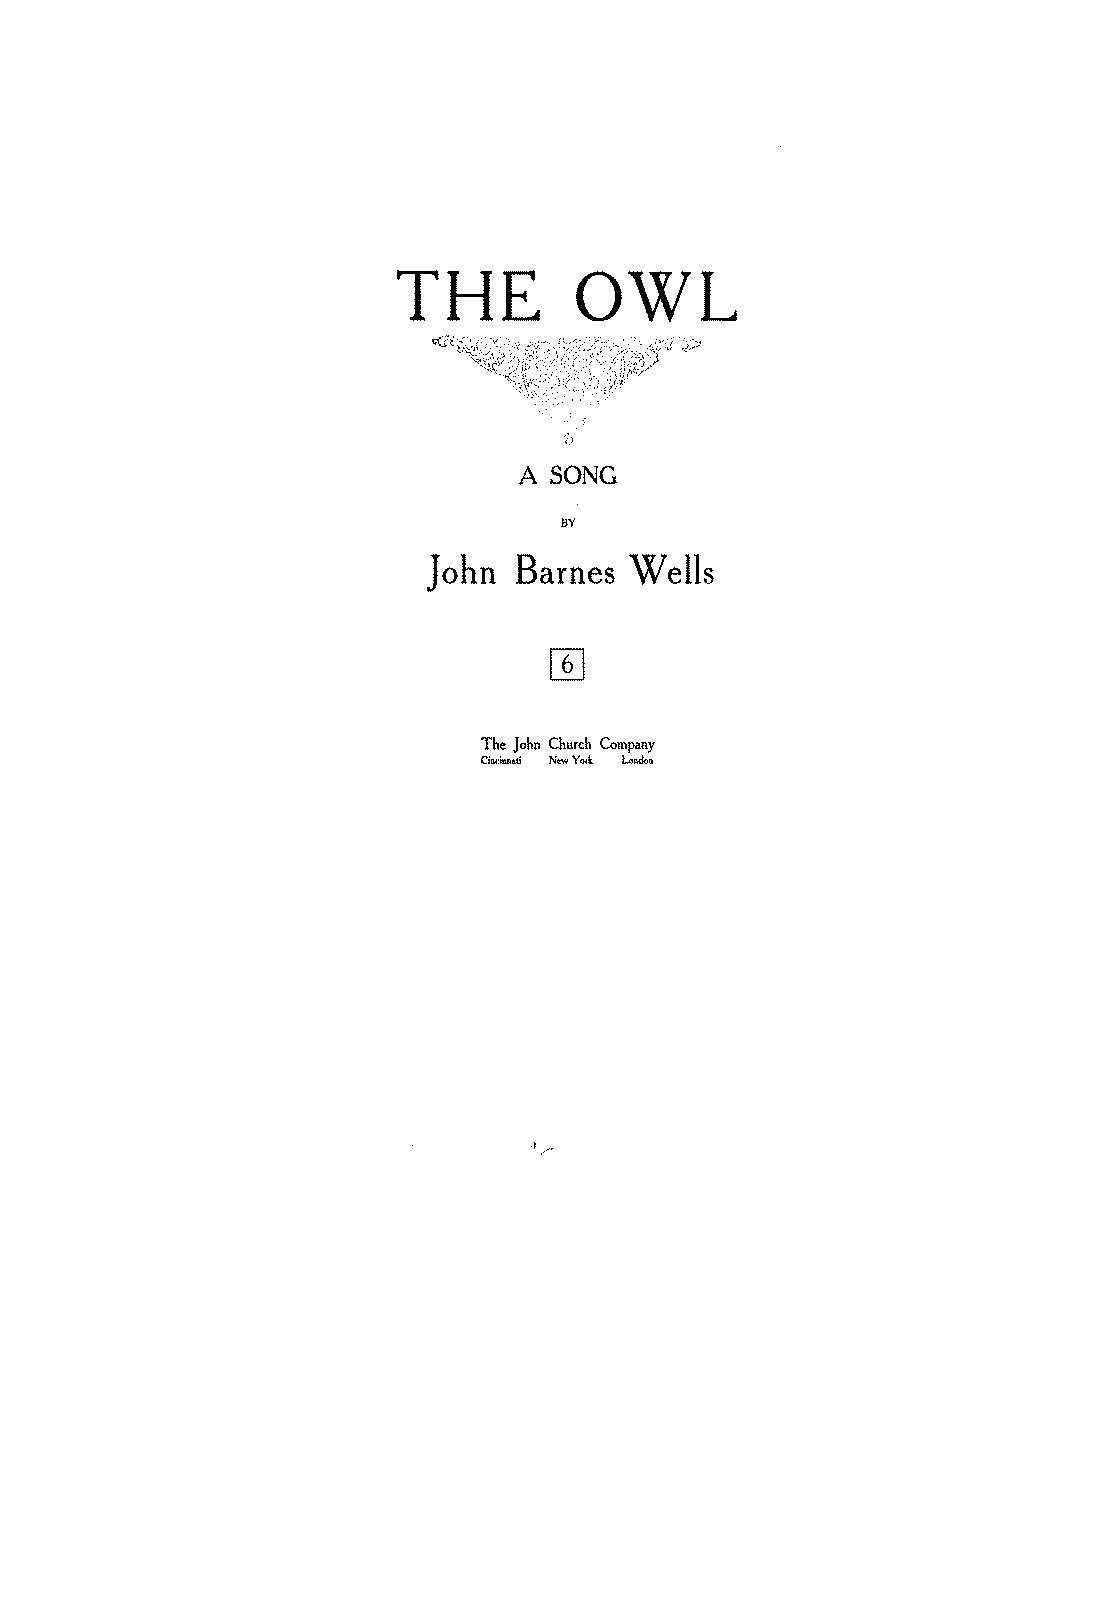 SIBLEY1802.8901.d9e4-39087011996271 the owl.pdf